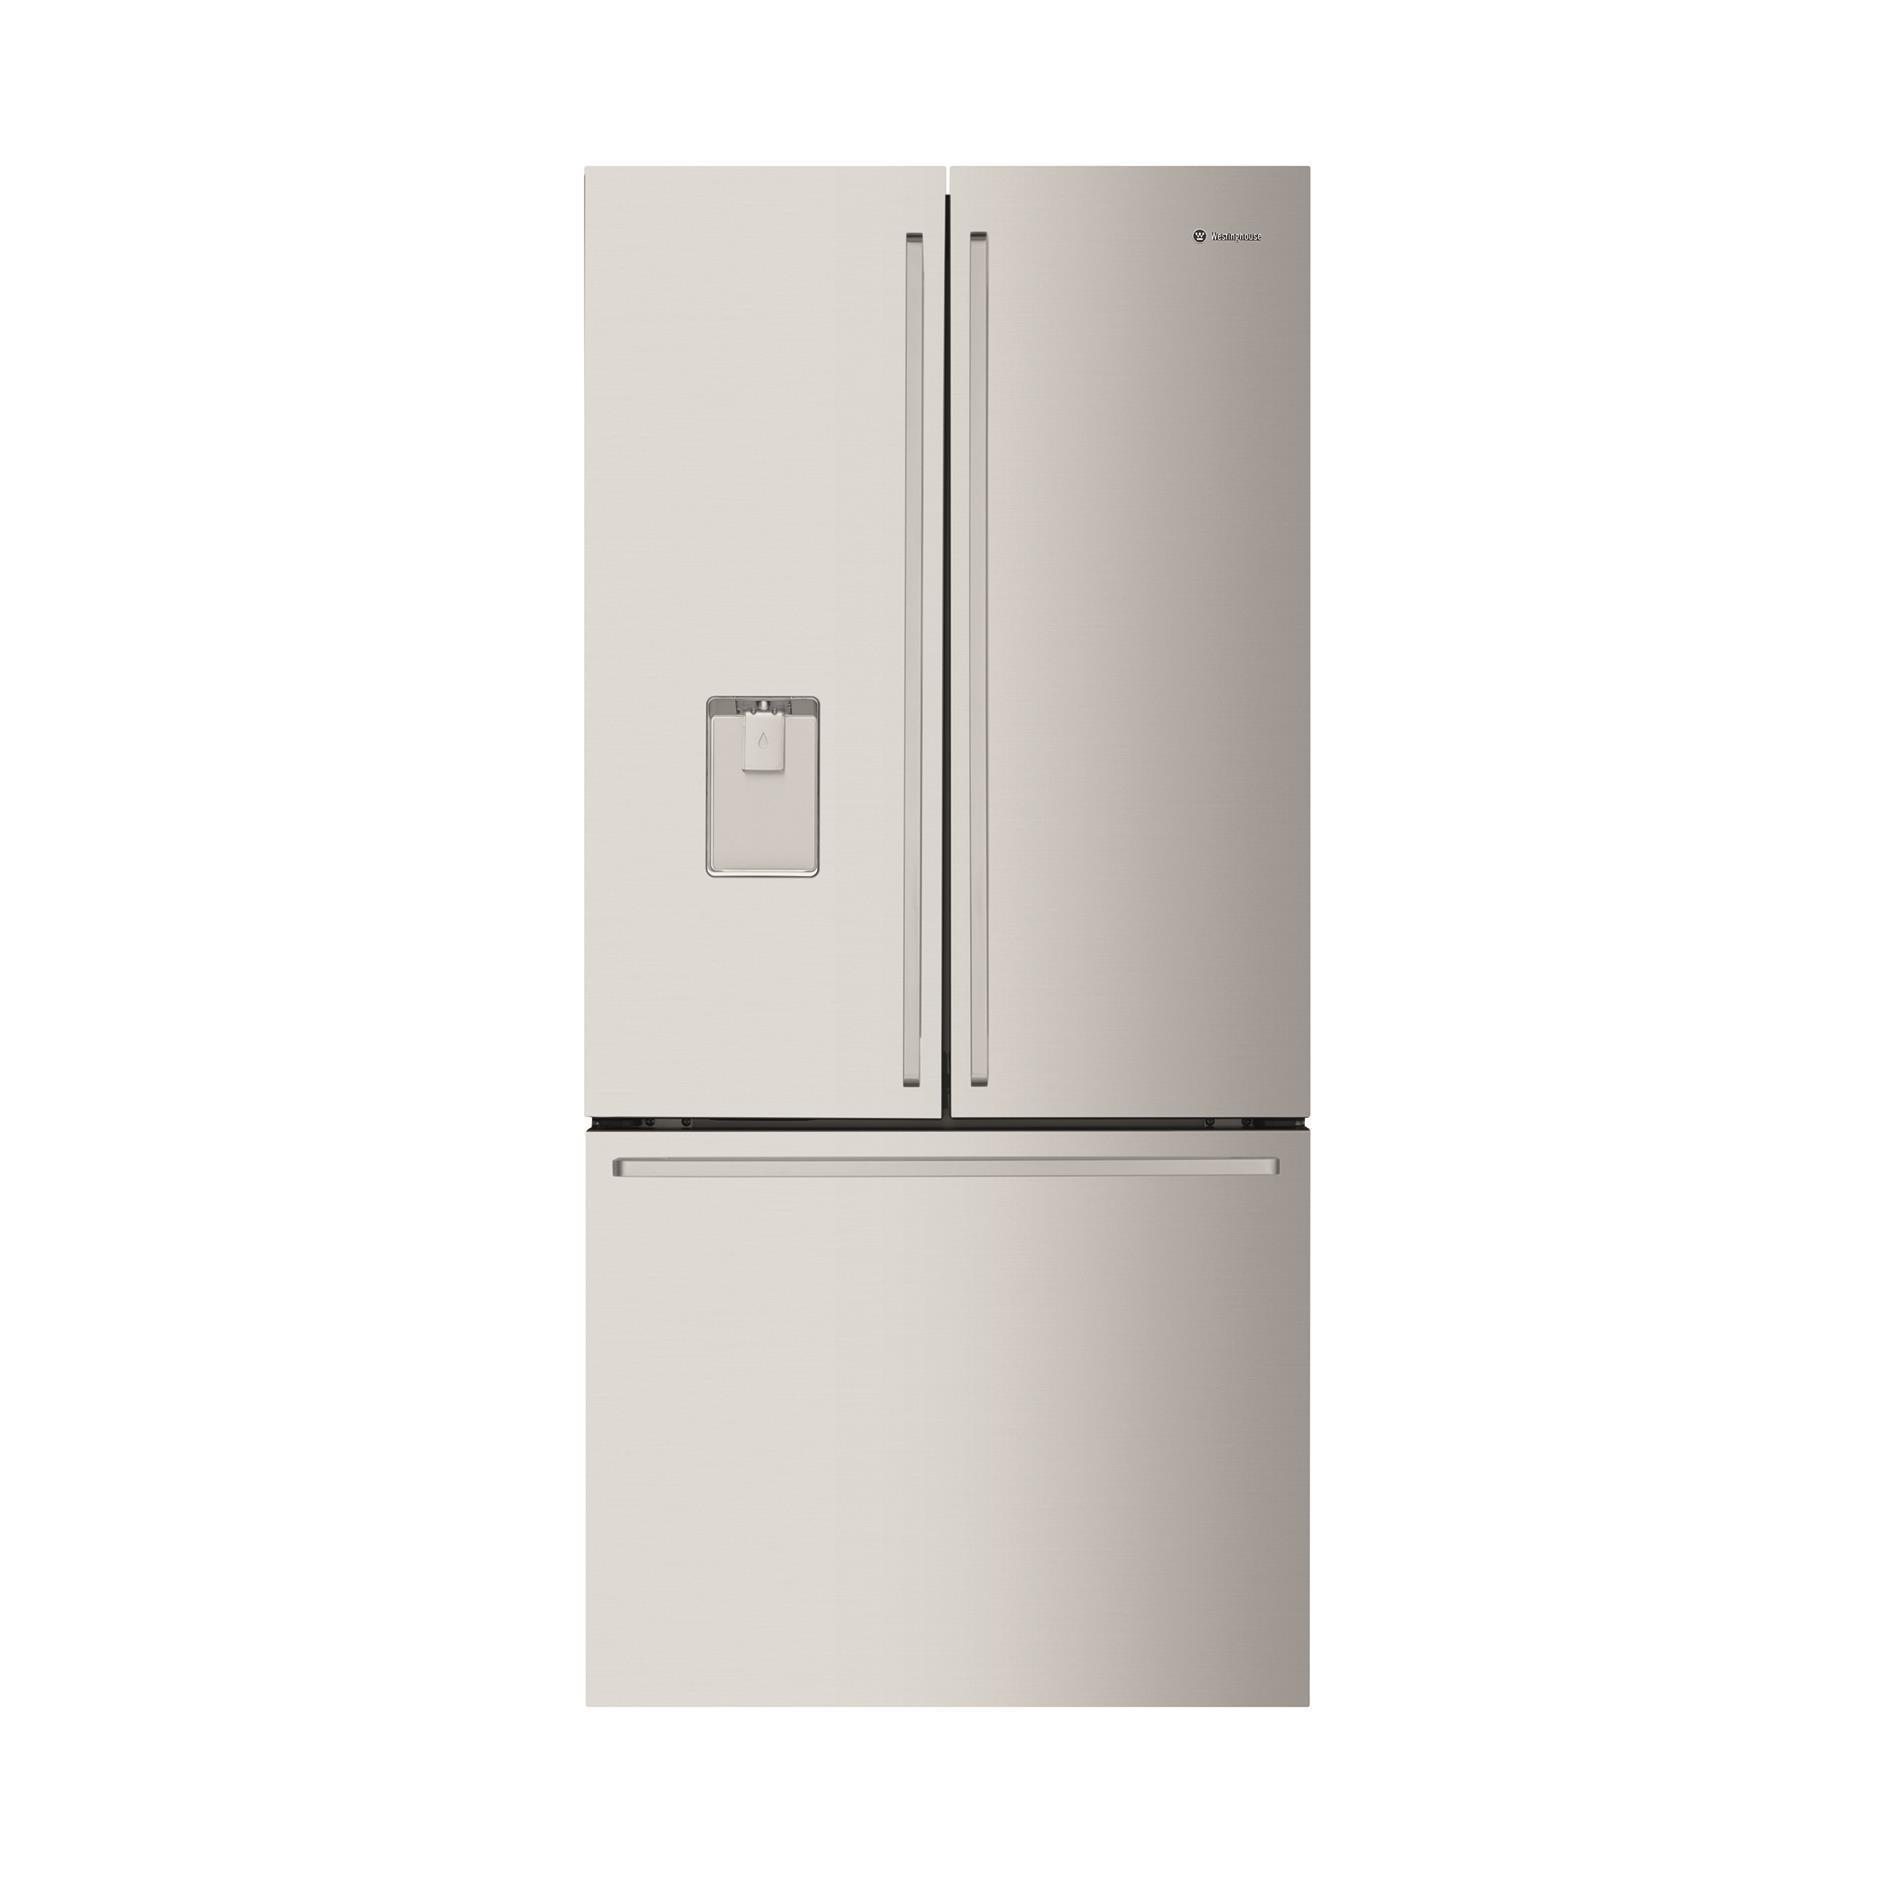 Westinghouse WHE5264SC 524L French Door Fridge with Ice & Water (S/Steel)